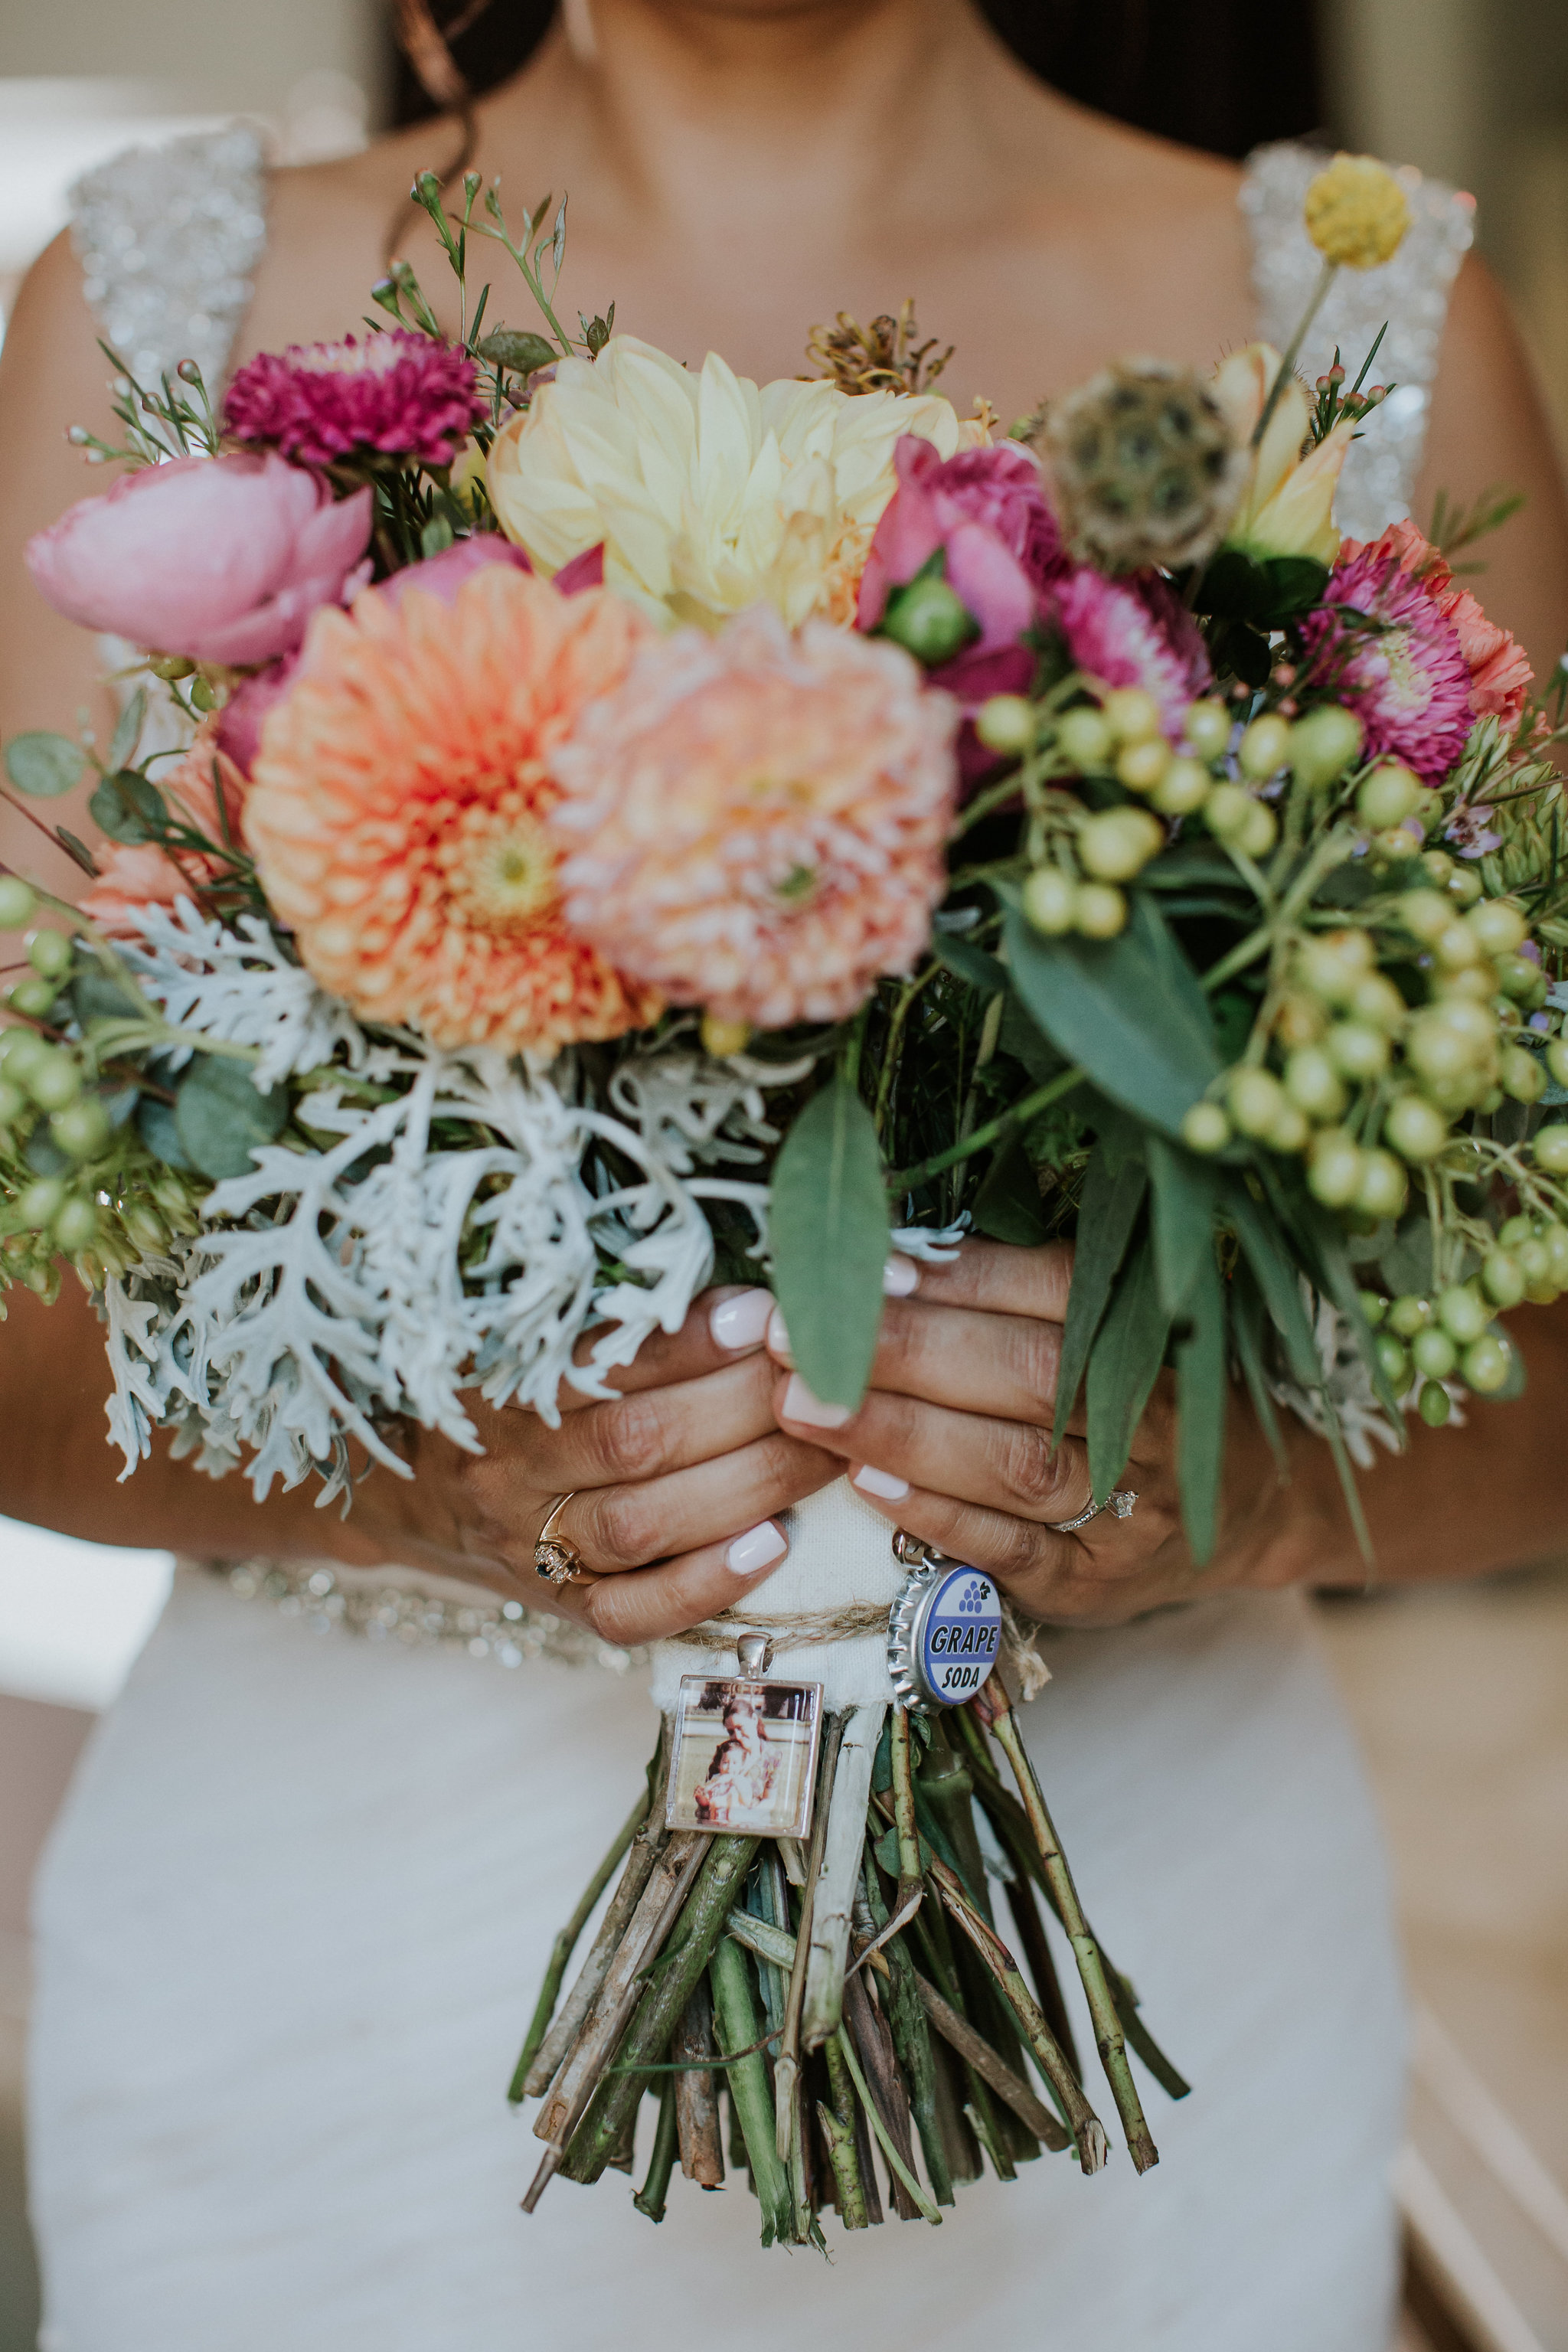 bright bouquet with momentos #lrqcforal #brightbouquet